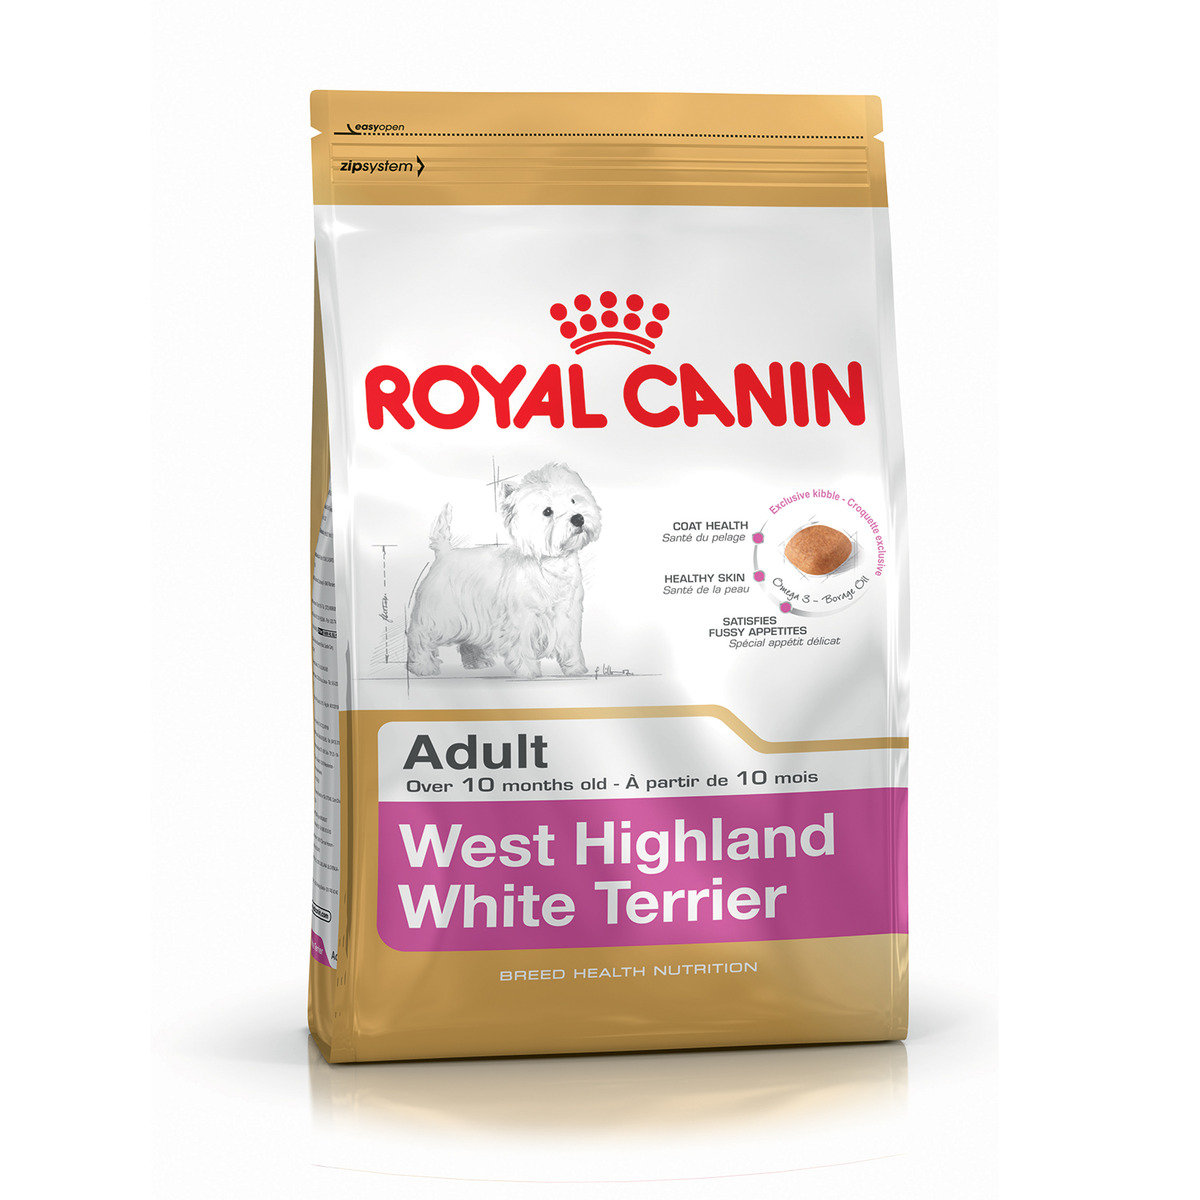 West Highland White Terrier 21 西高地白爹利配方  (WH21)